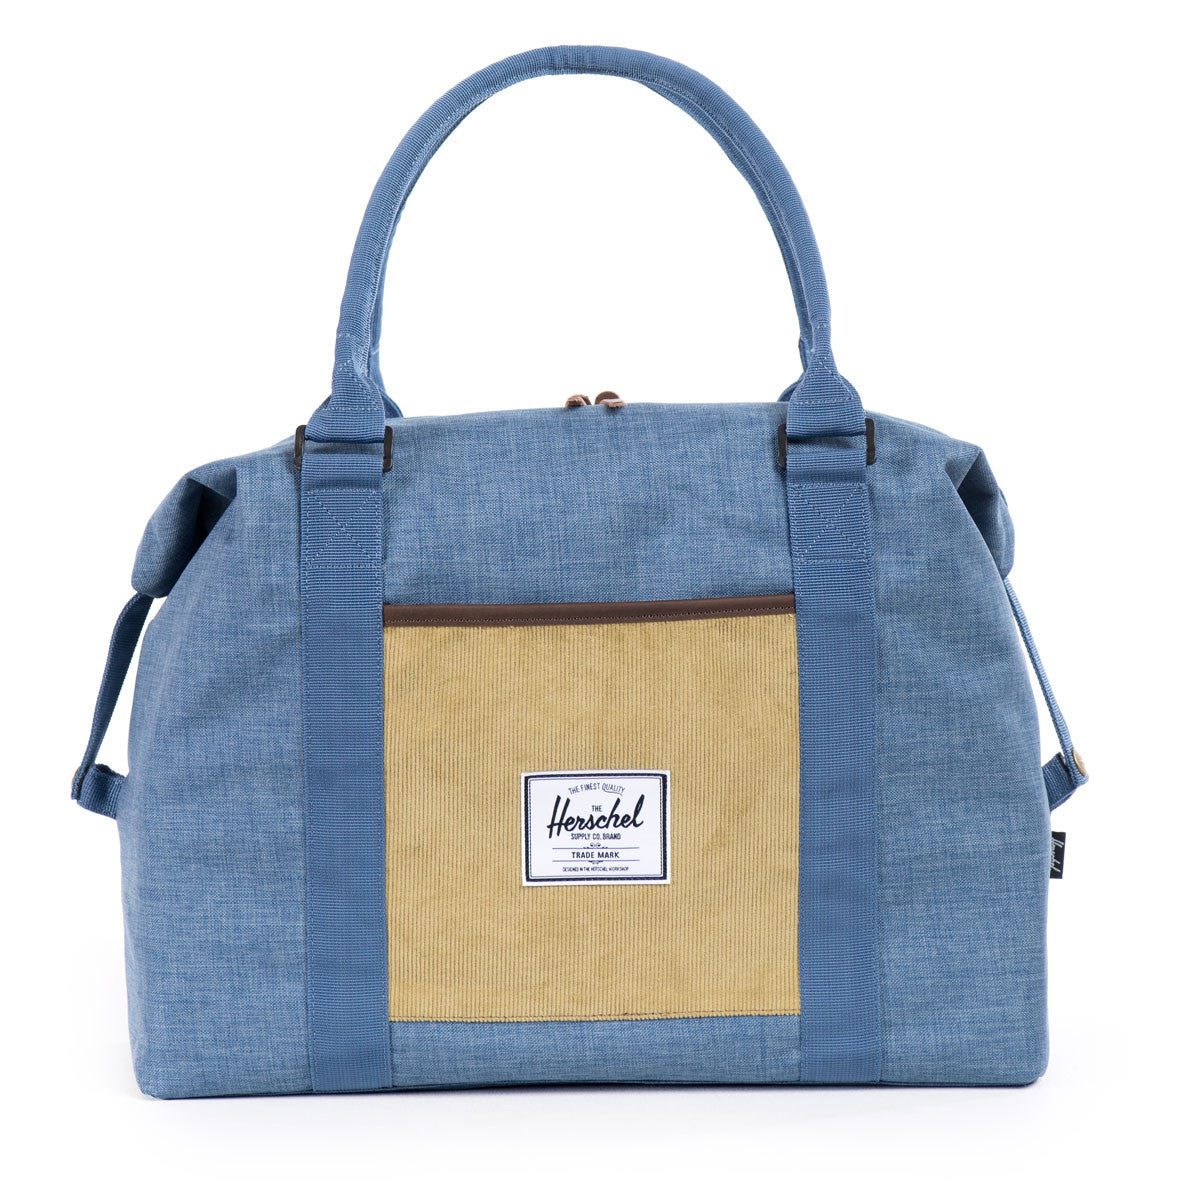 Herschel Supply Co.: Strand Duffle Bag - Navy / Straw Crosshatch front